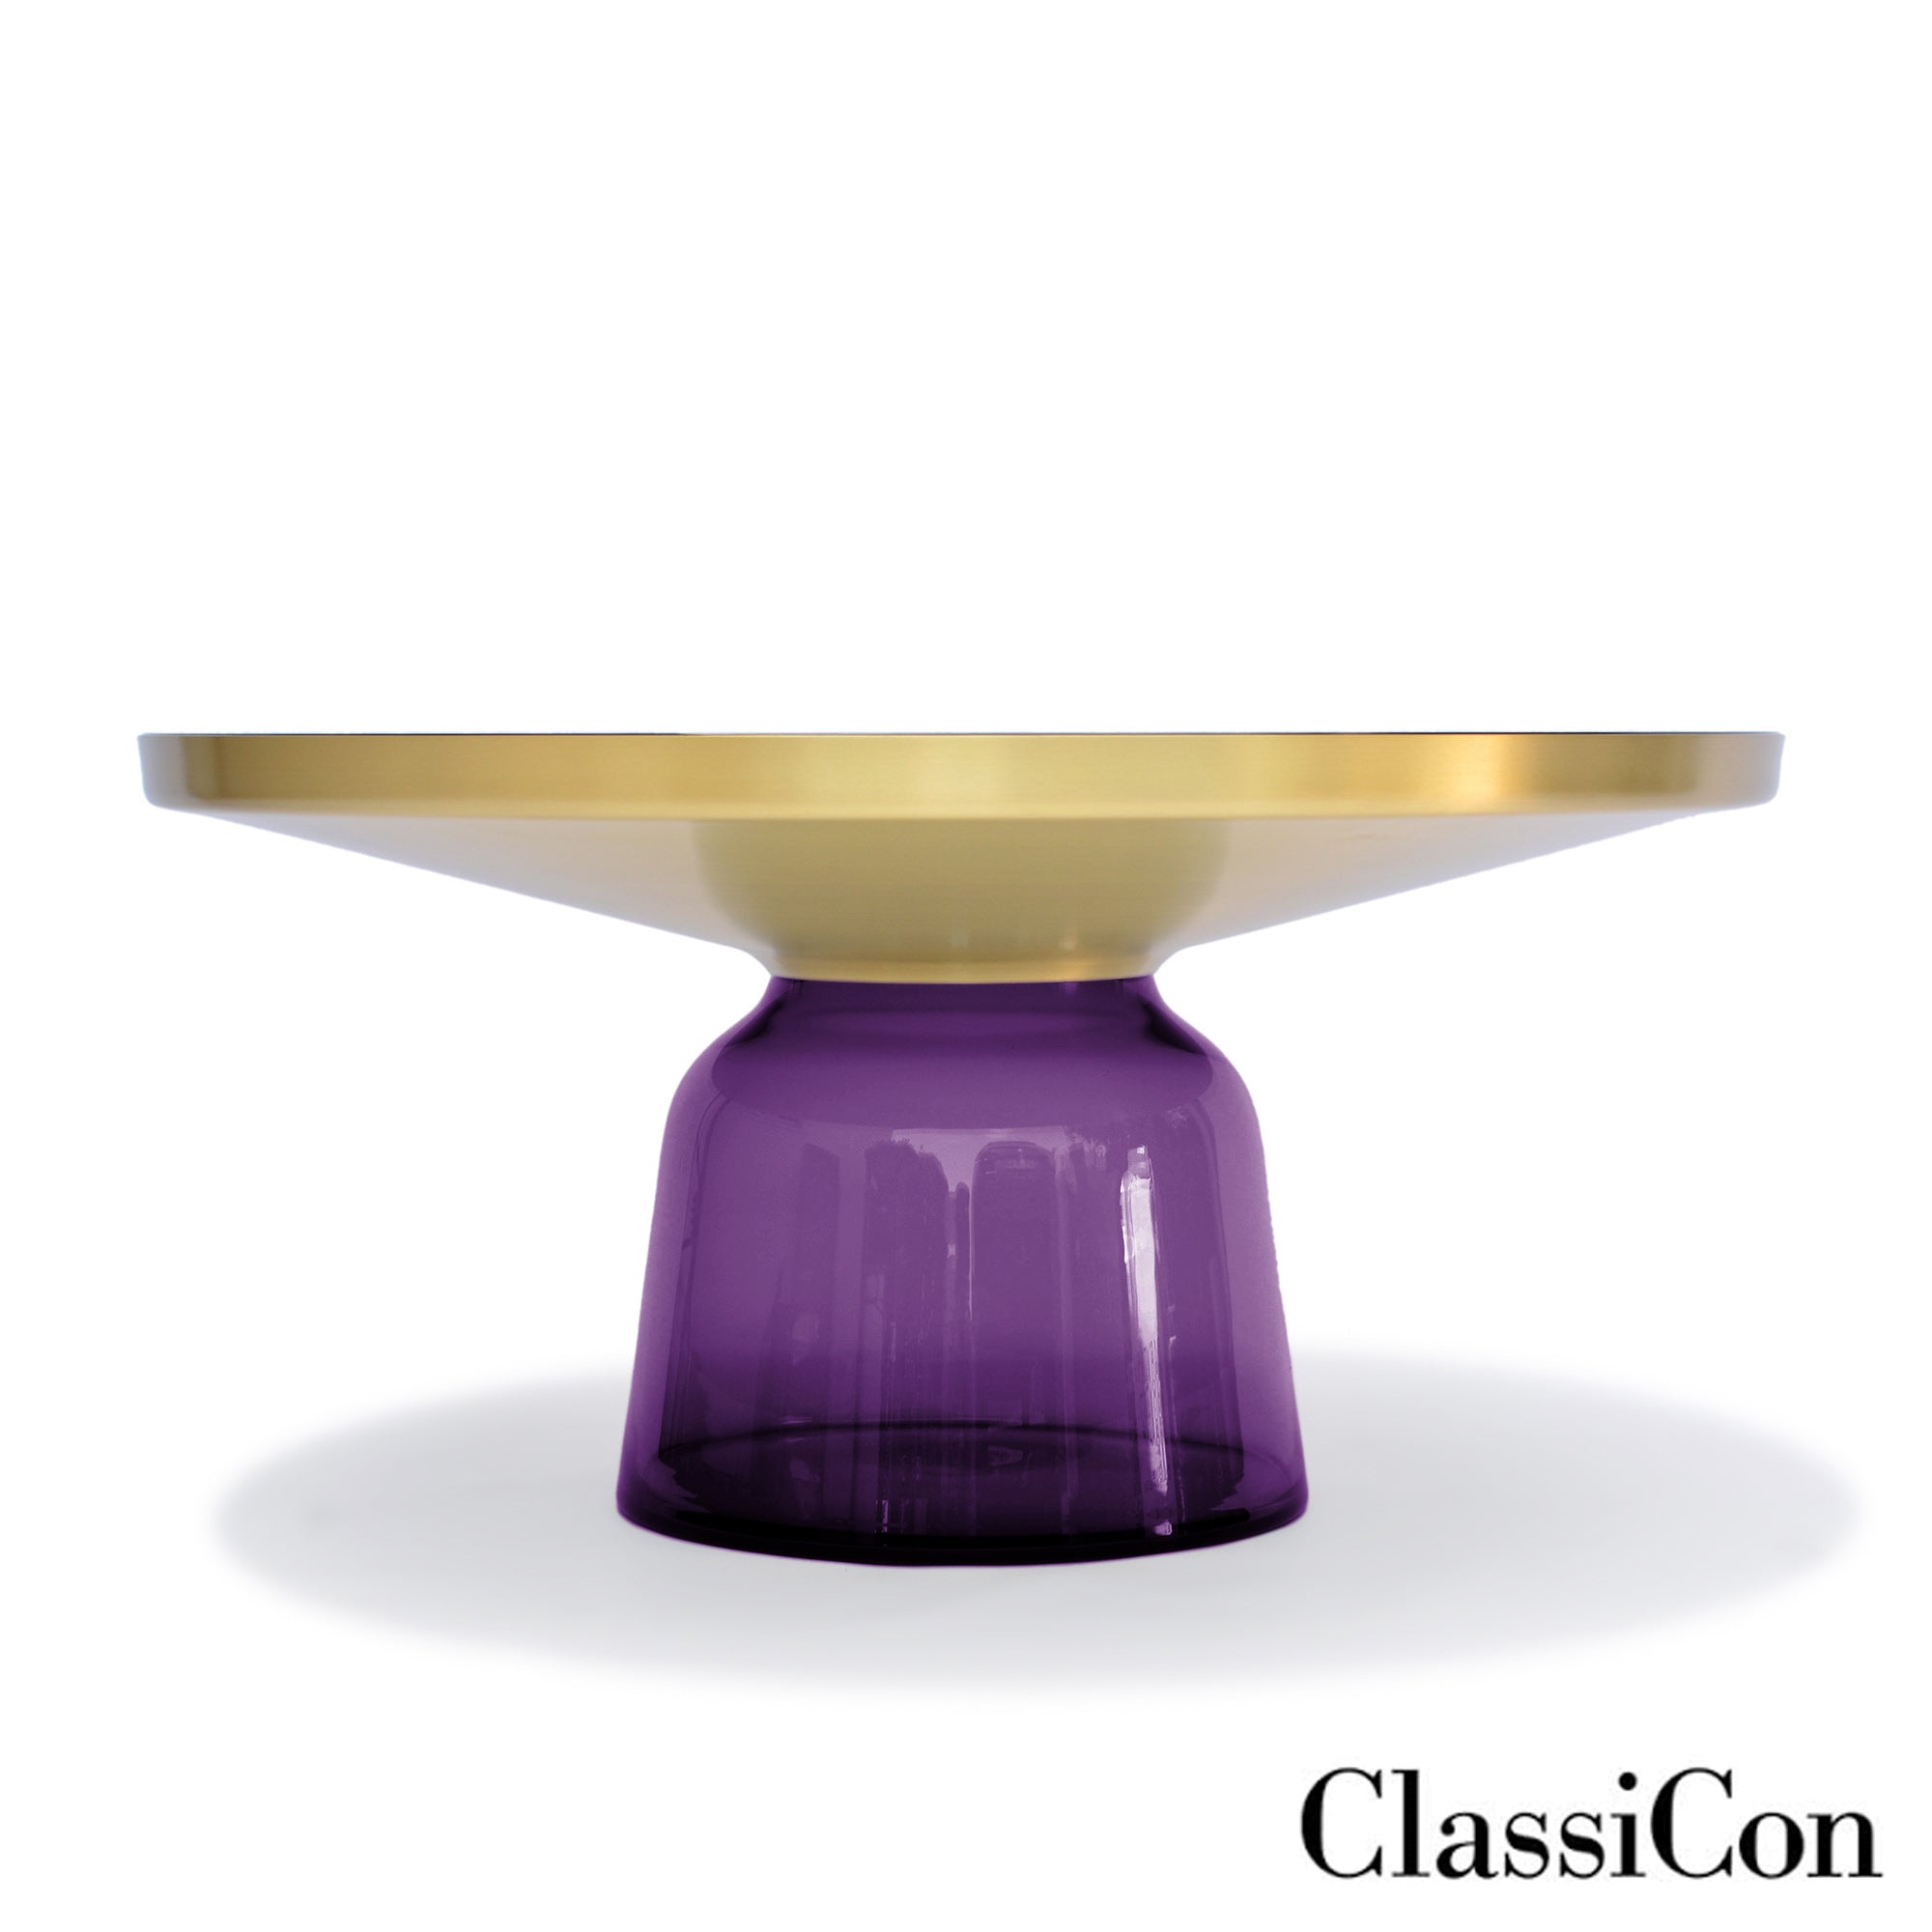 ClassiCon - Bell Coffee Table, Ø 75cm